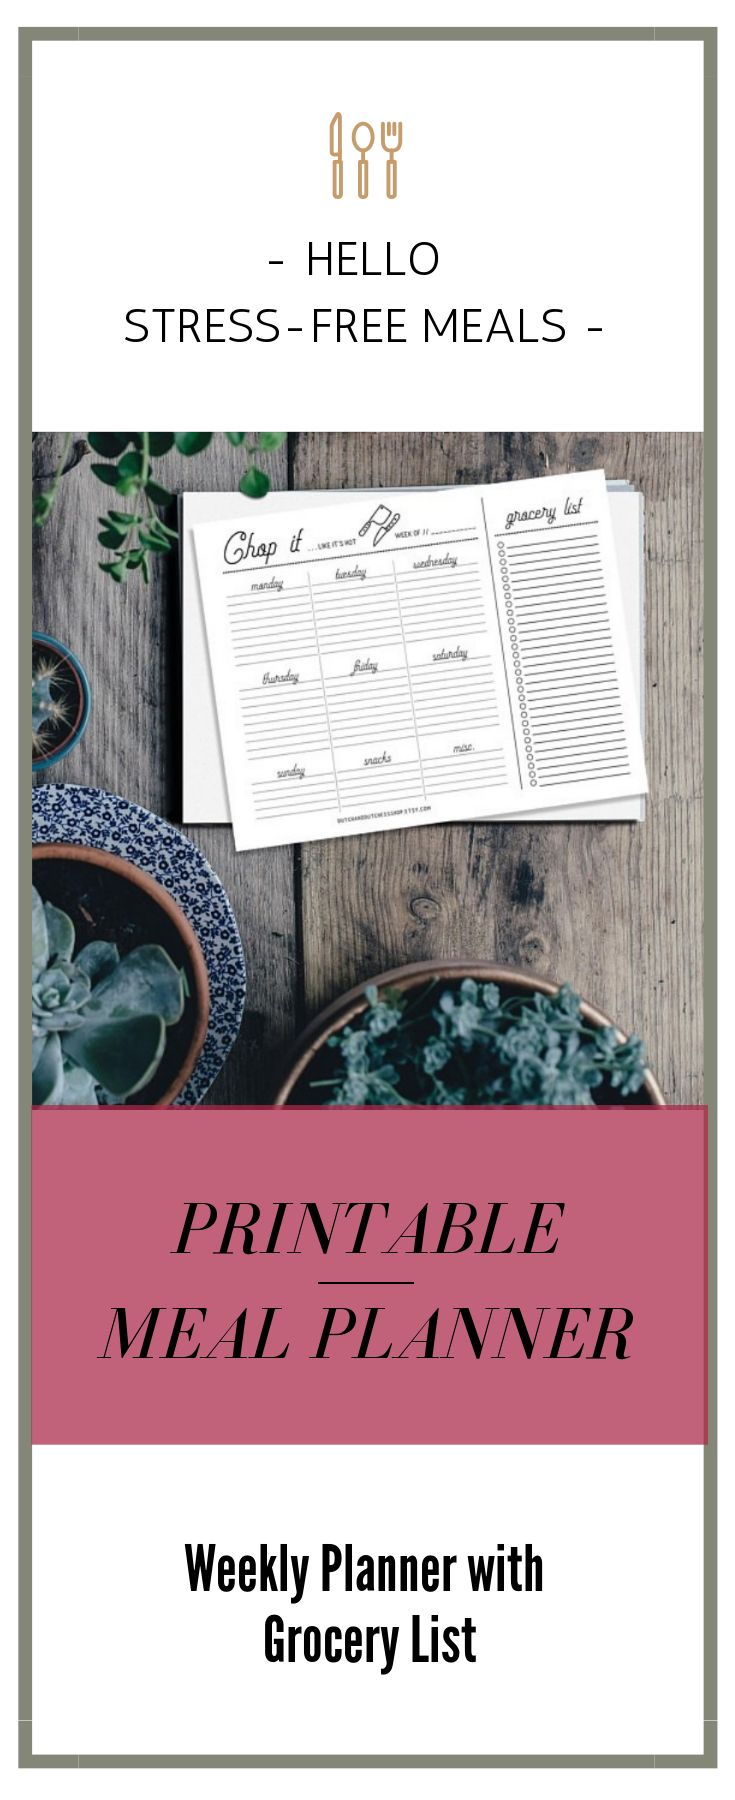 """Ready to never have to ask """"what's for dinner?"""" again?  Print out this weekly meal planner and grocery list and have a stress-free week with amazing meals and a happy family.  #printables #organizedhome #ad #mealplanning"""